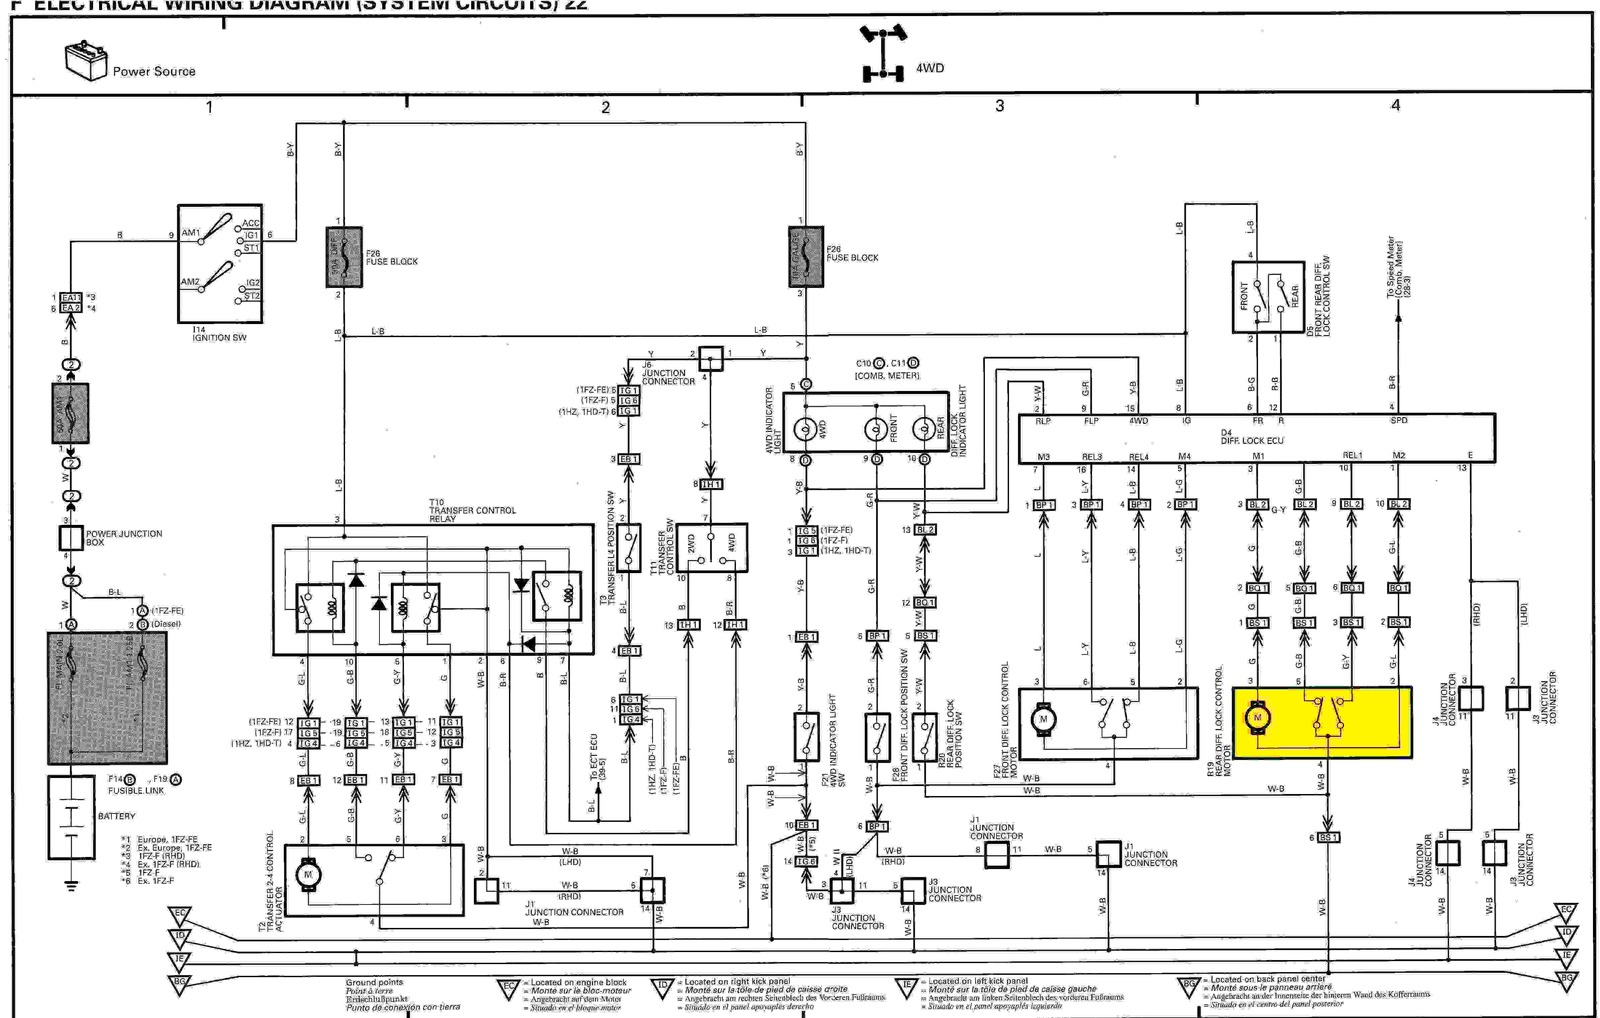 Rear Diff Lock Actuator No Power Getting To It on Toyota Land Cruiser Engine Diagram